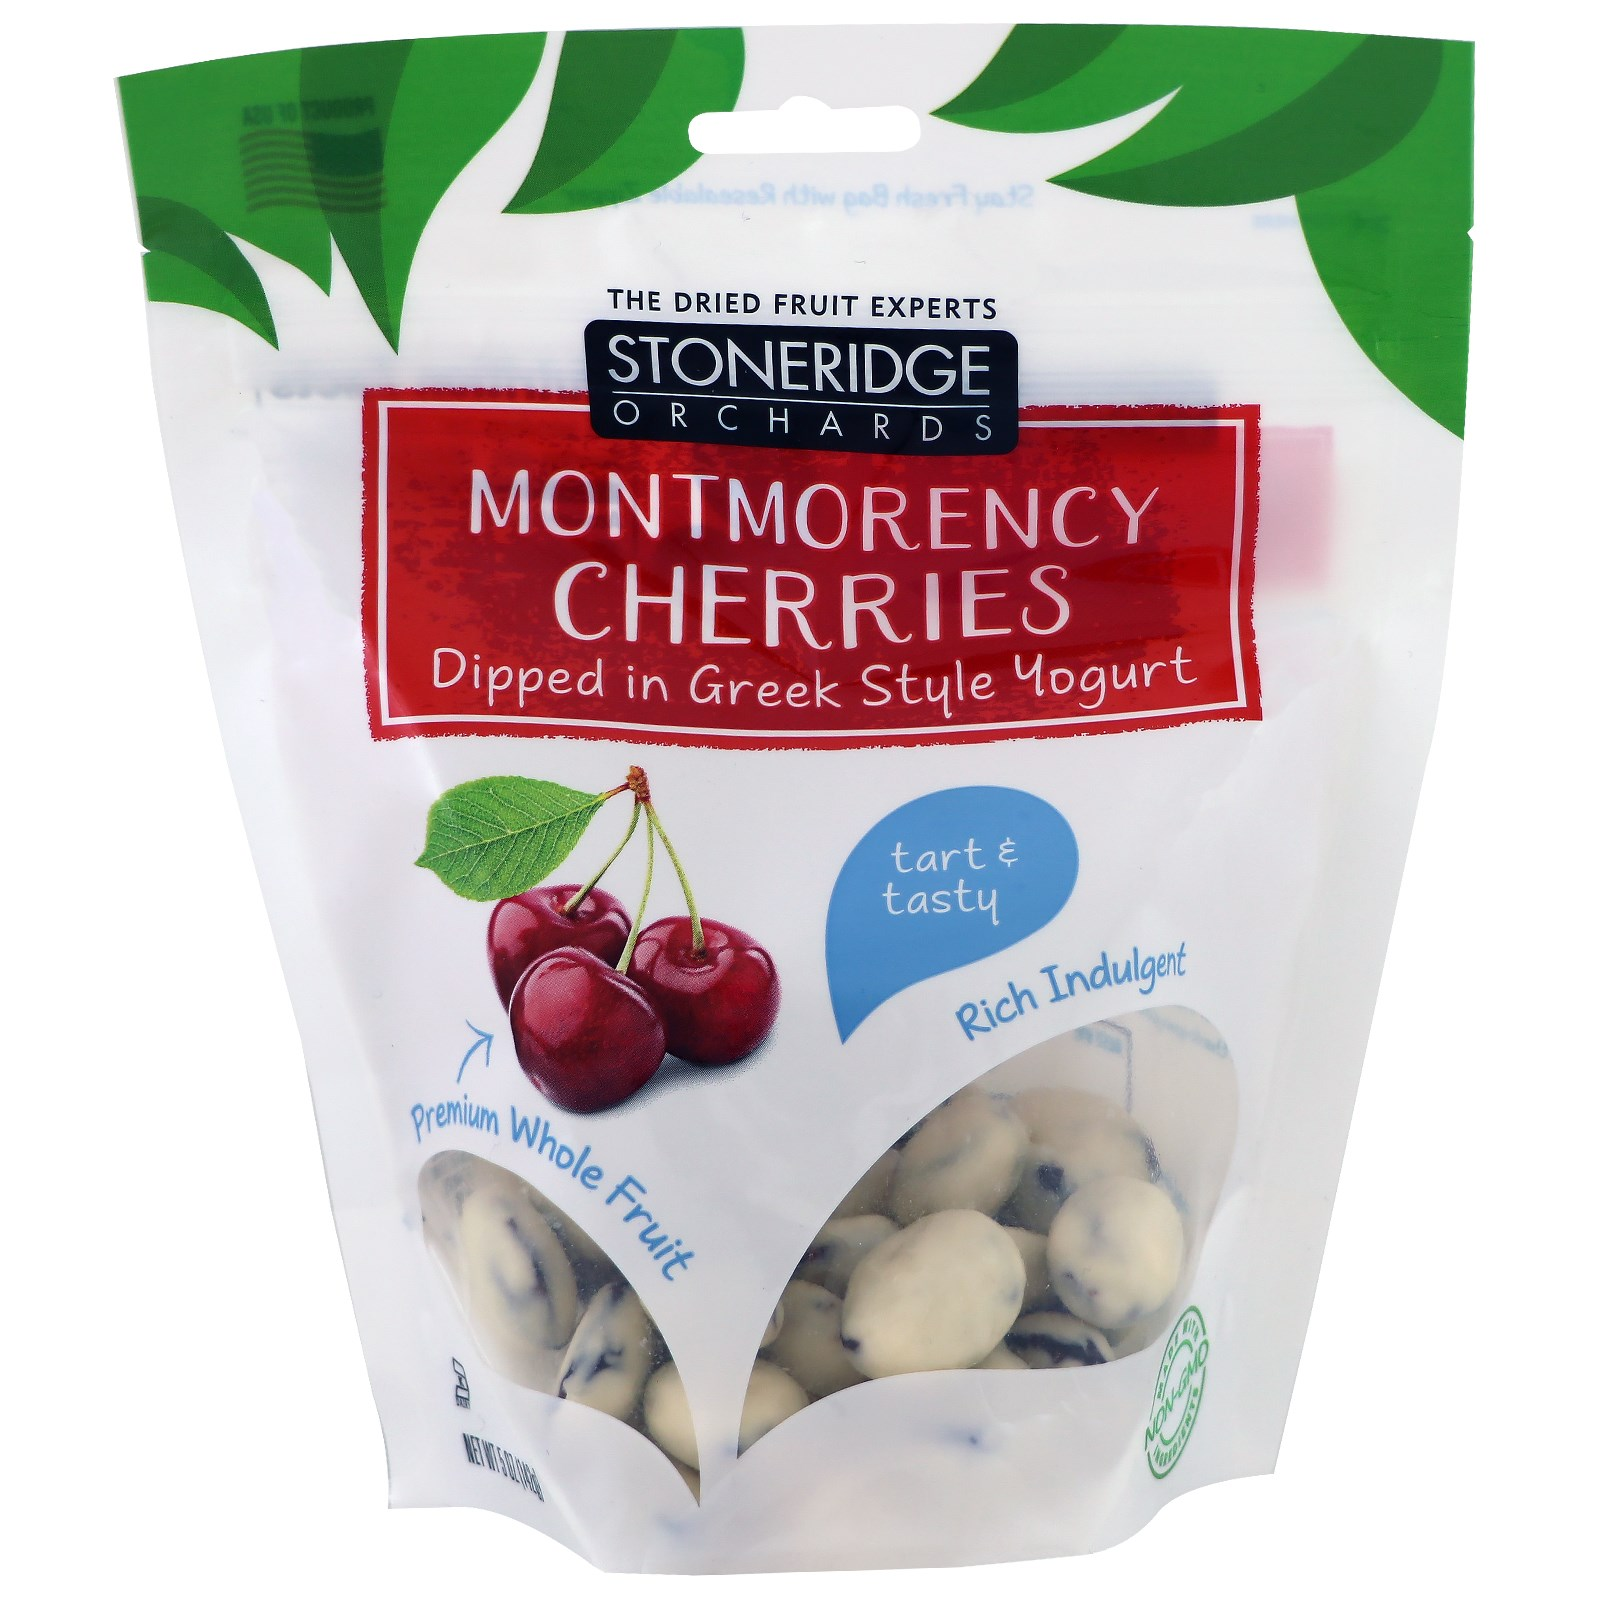 Stoneridge Orchards, Montmorency Cherries Dipped in Greek Style Yogurt, 5 oz (142 g)